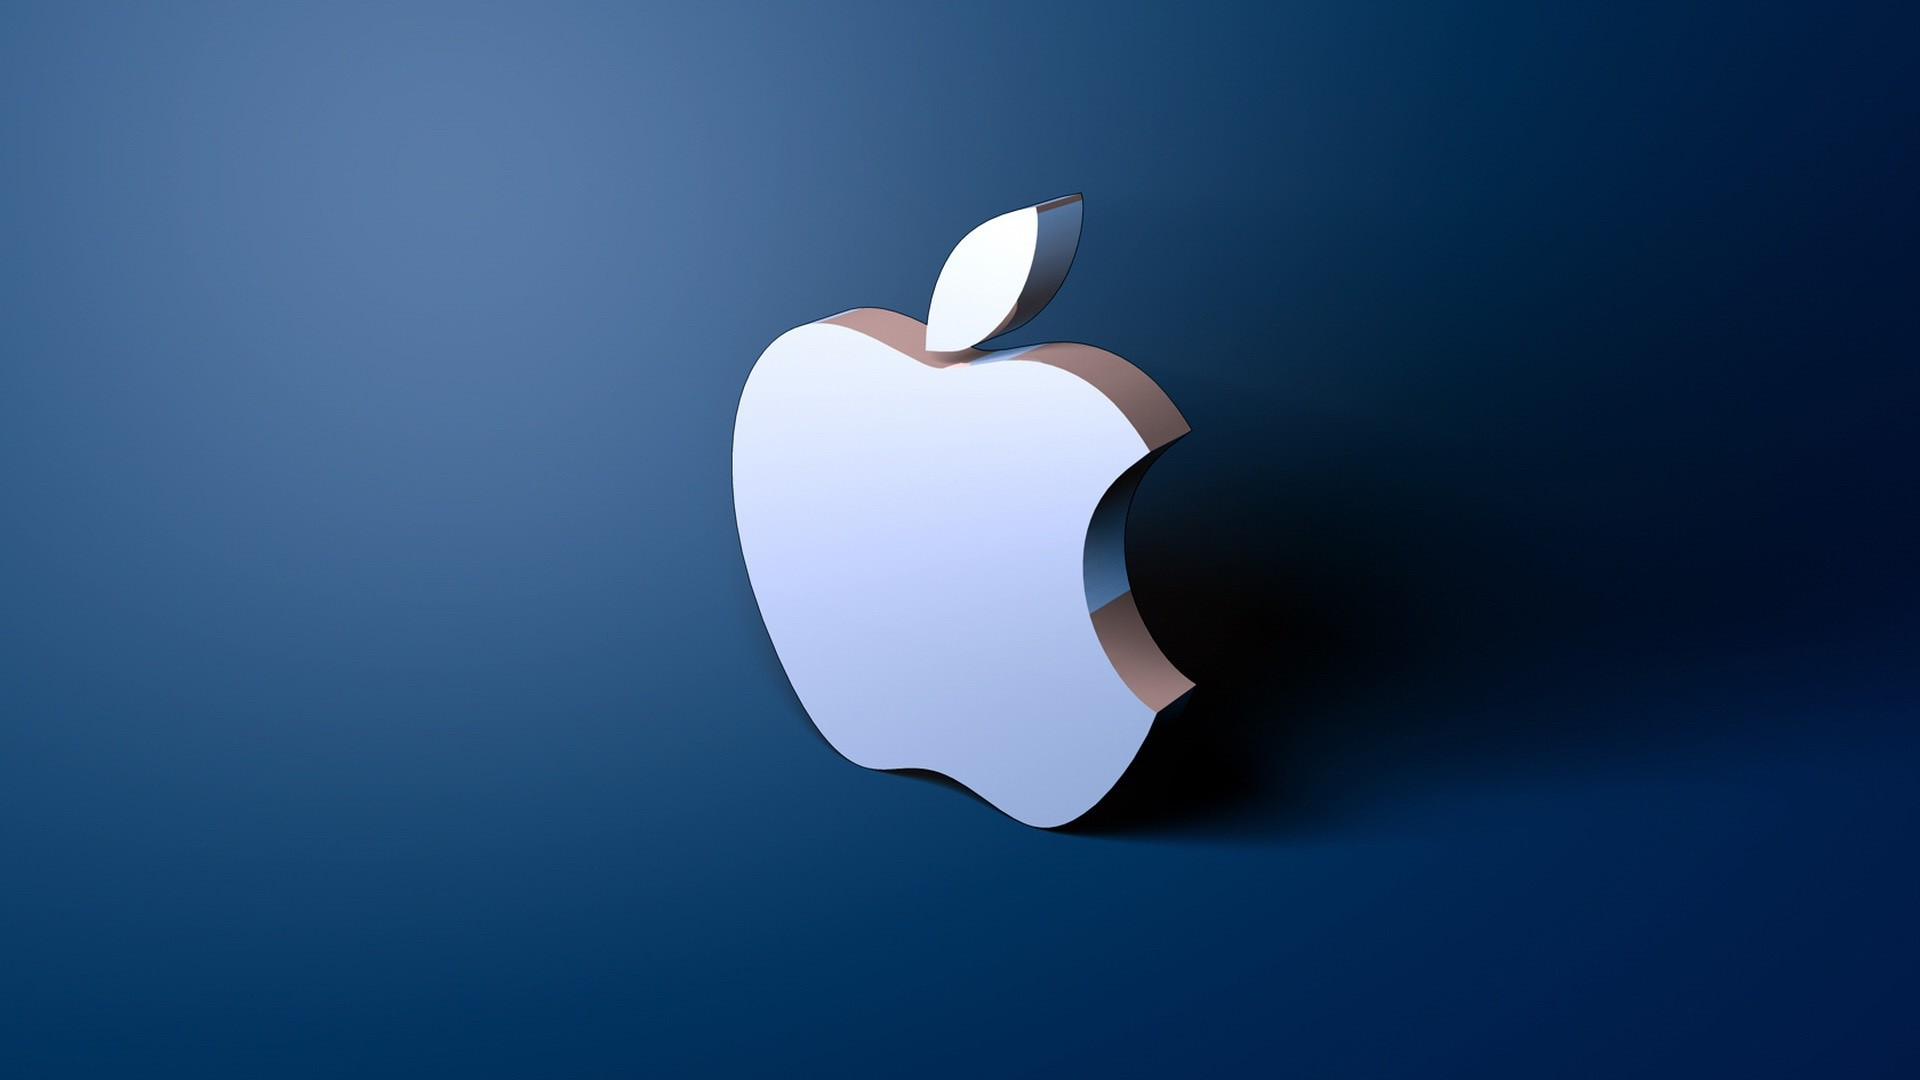 Most Viewed Symbol Wallpapers: Apple Logo HD Wallpaper (78+ Images